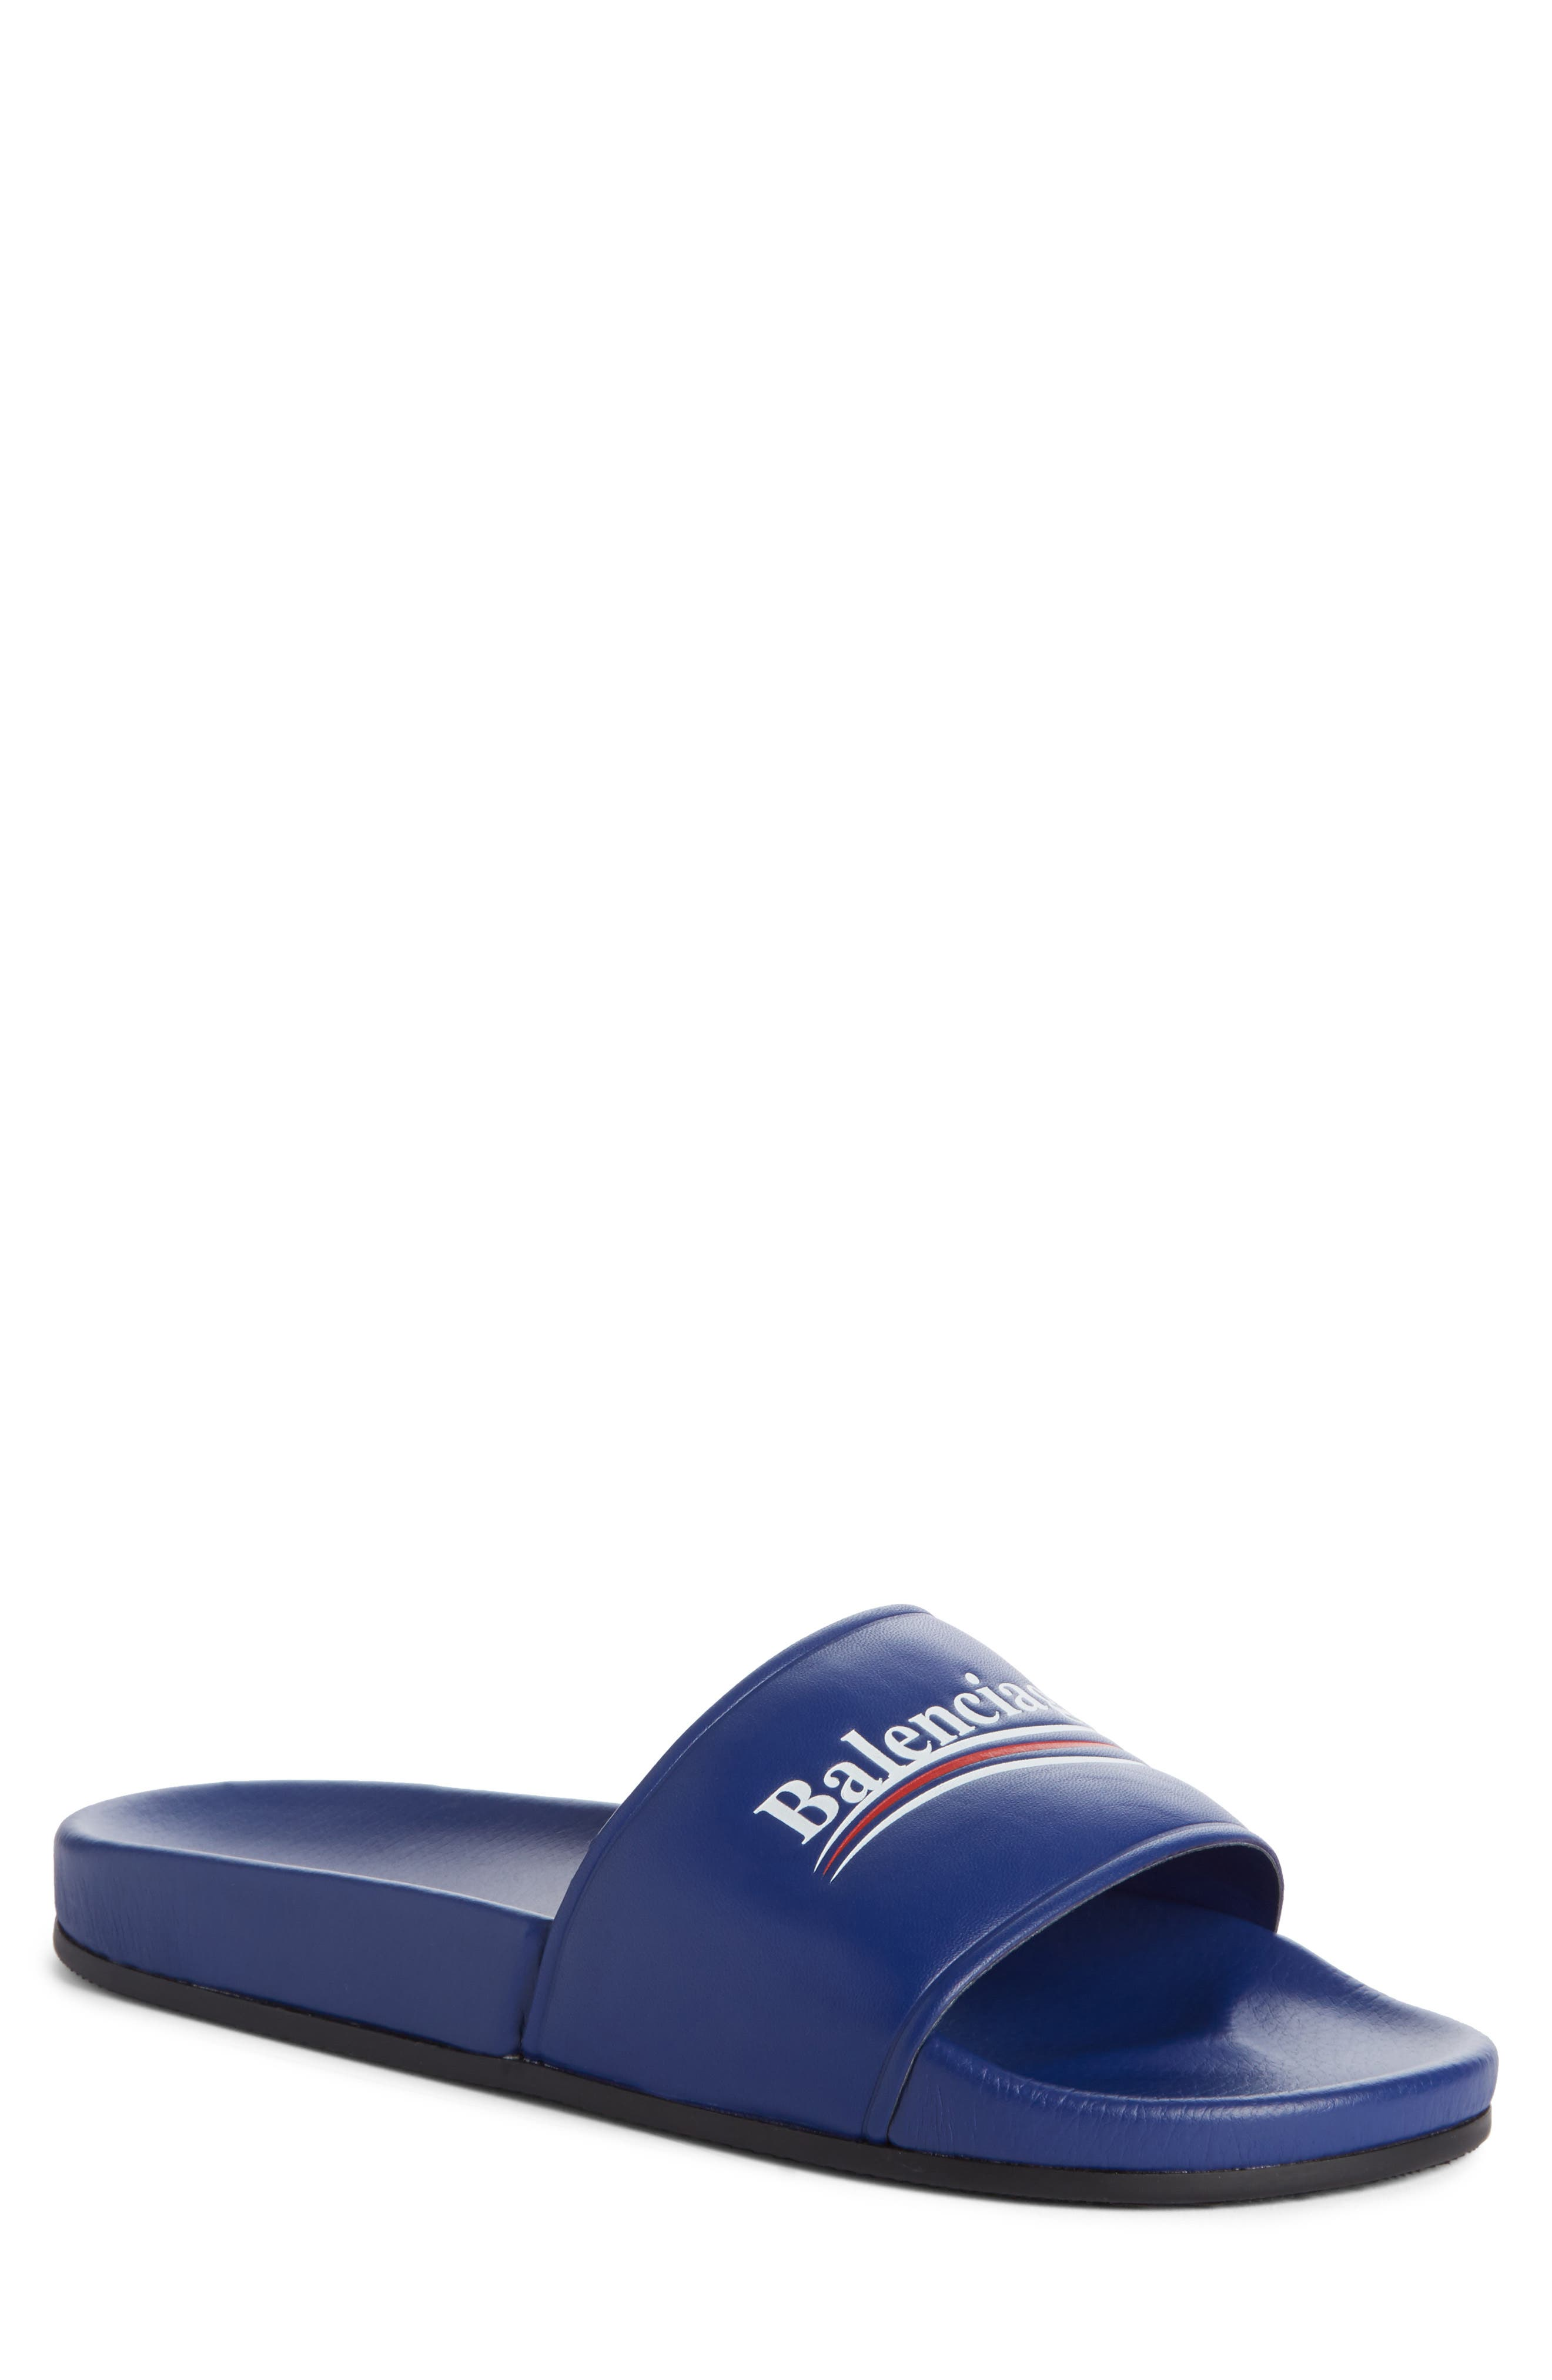 Balenciaga Retro Logo Slide Sandal (Men)